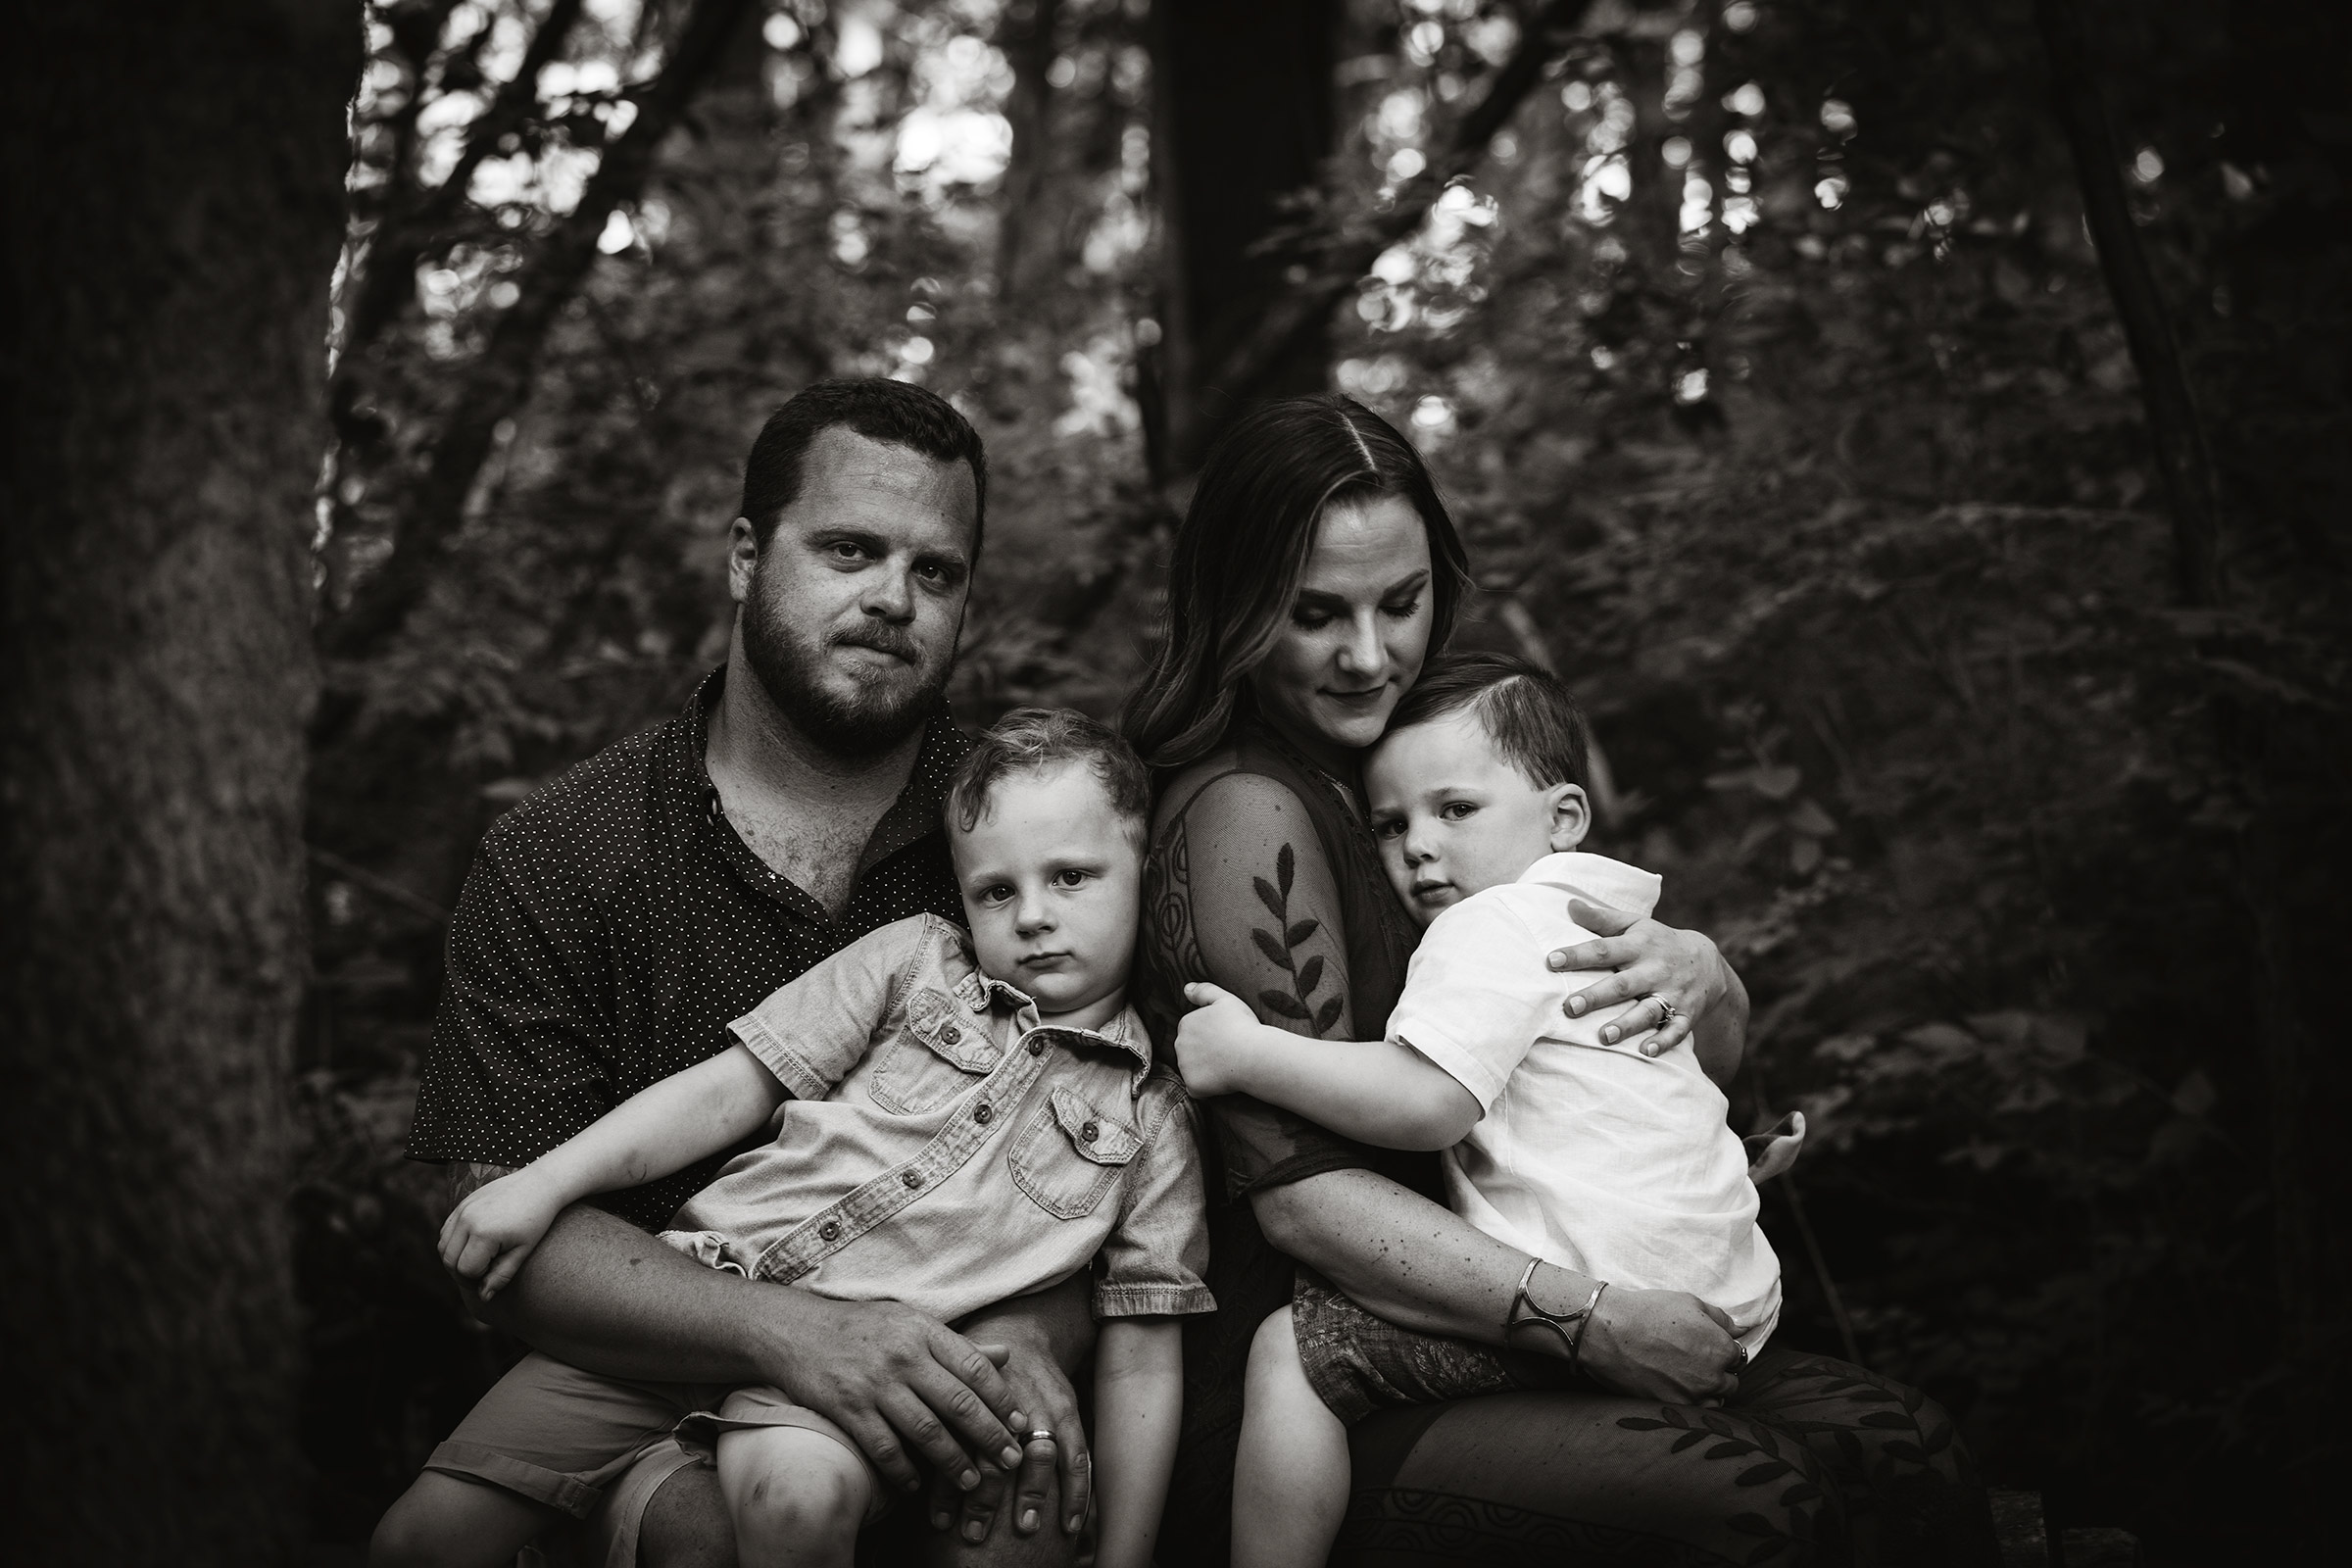 flynn-family-serious-black-and-white-jester-park-iowa-raelyn-ramey-photography.jpg